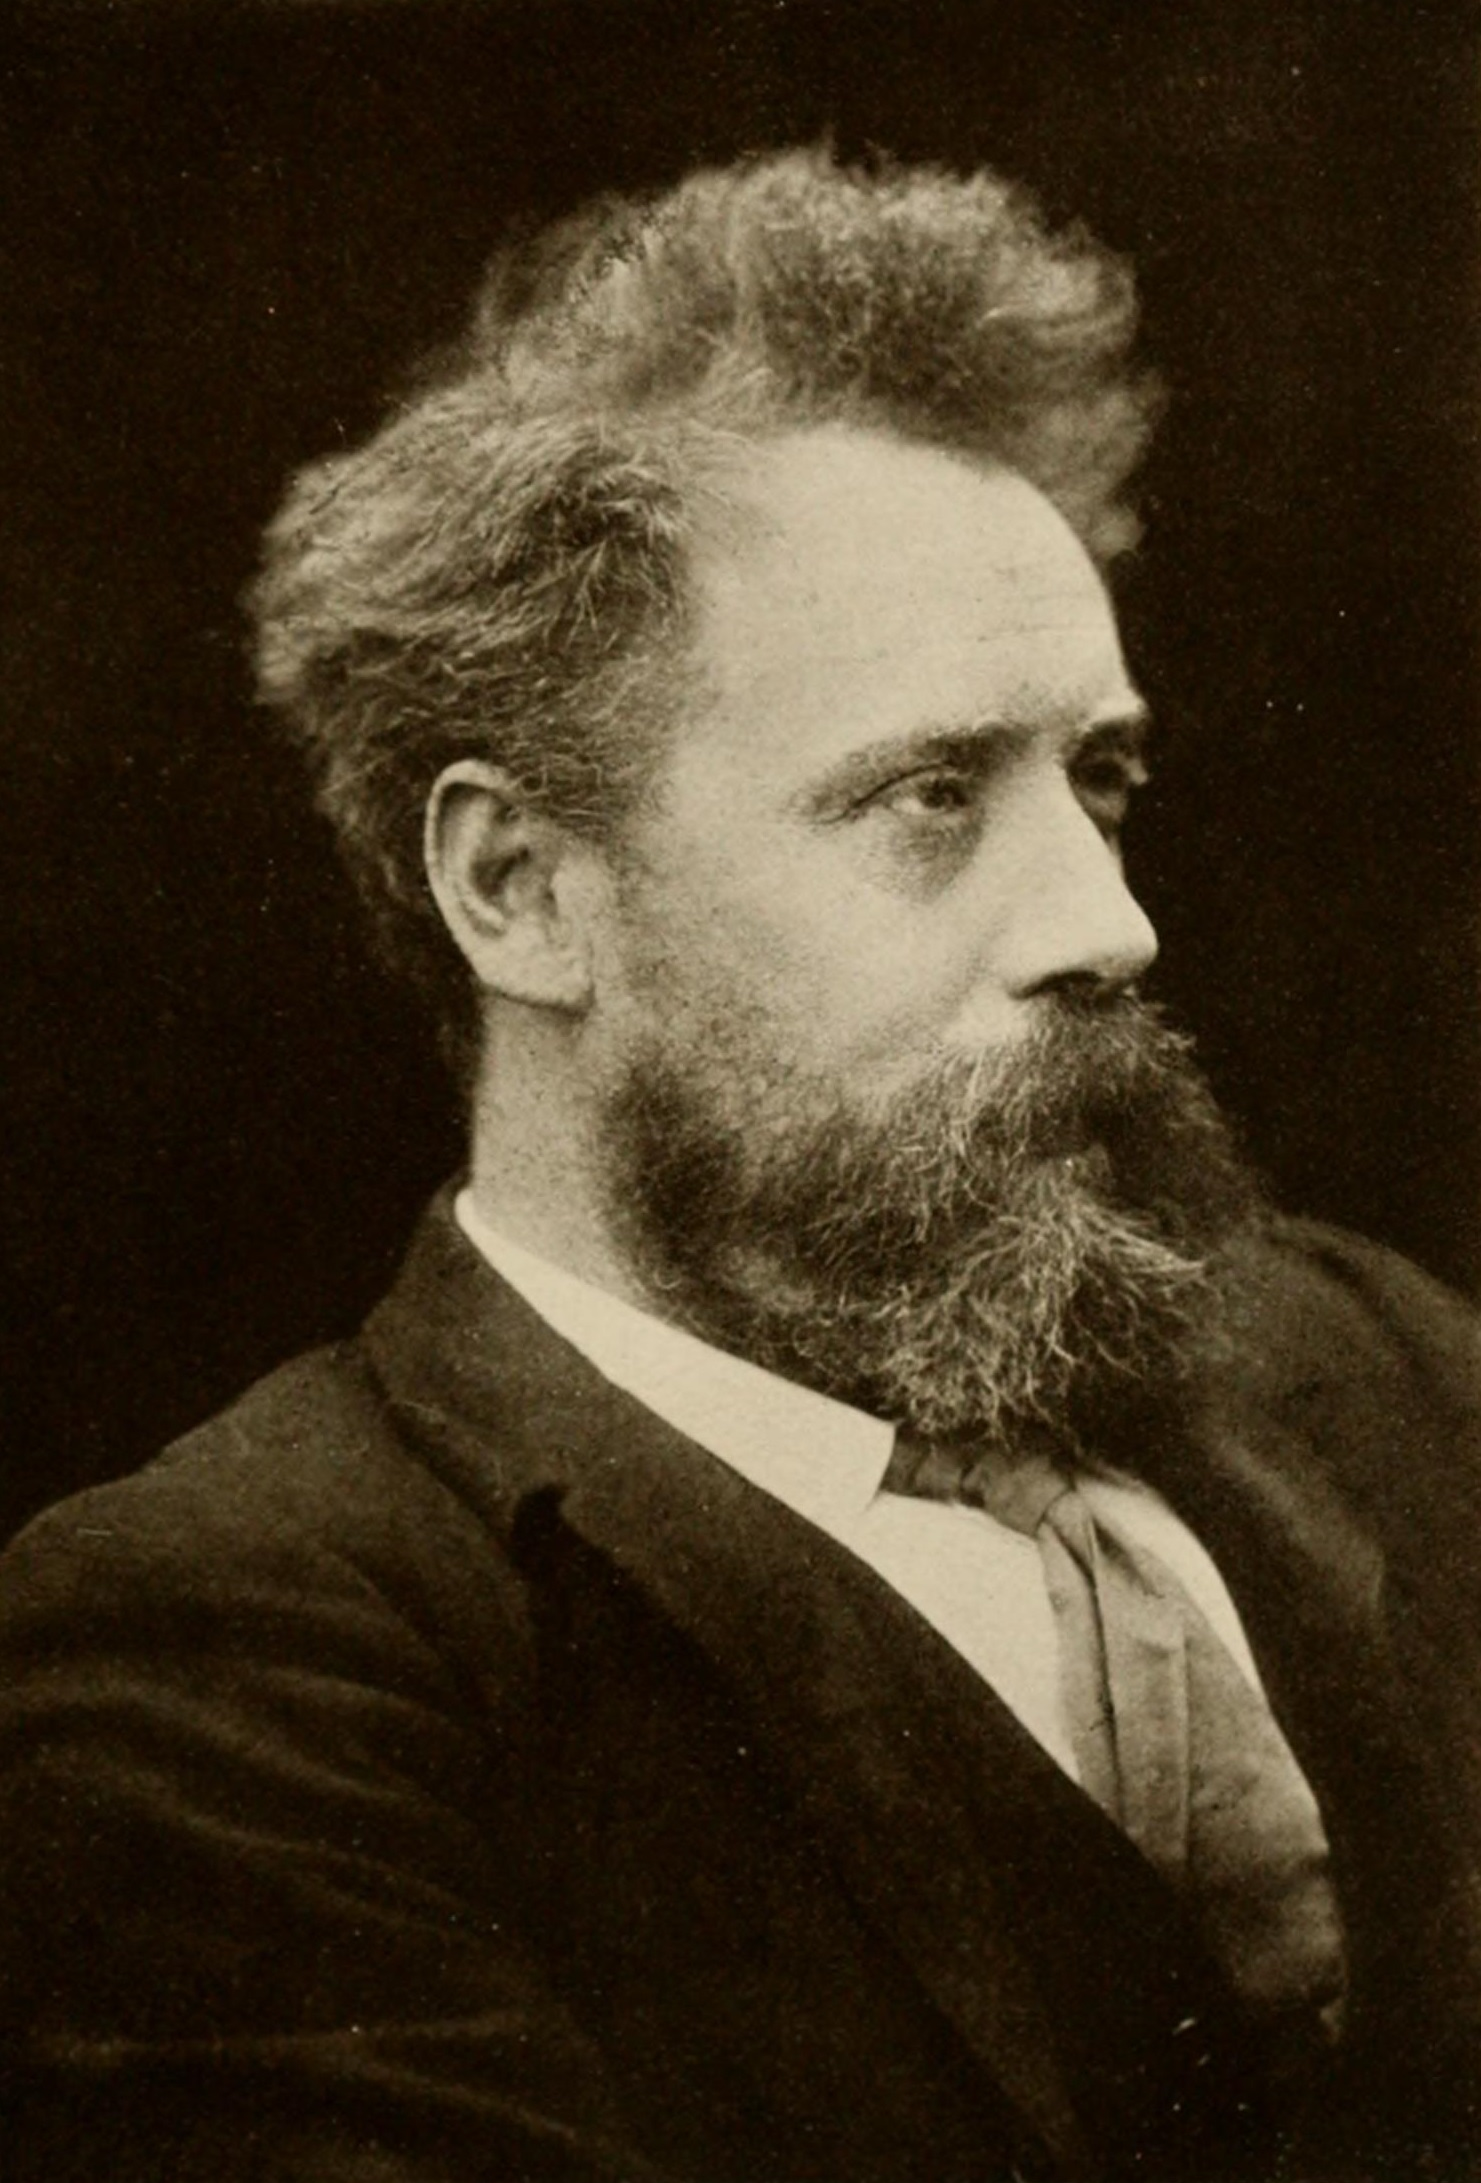 https://upload.wikimedia.org/wikipedia/commons/5/55/Portrait_of_William_Ernest_Henley.jpg